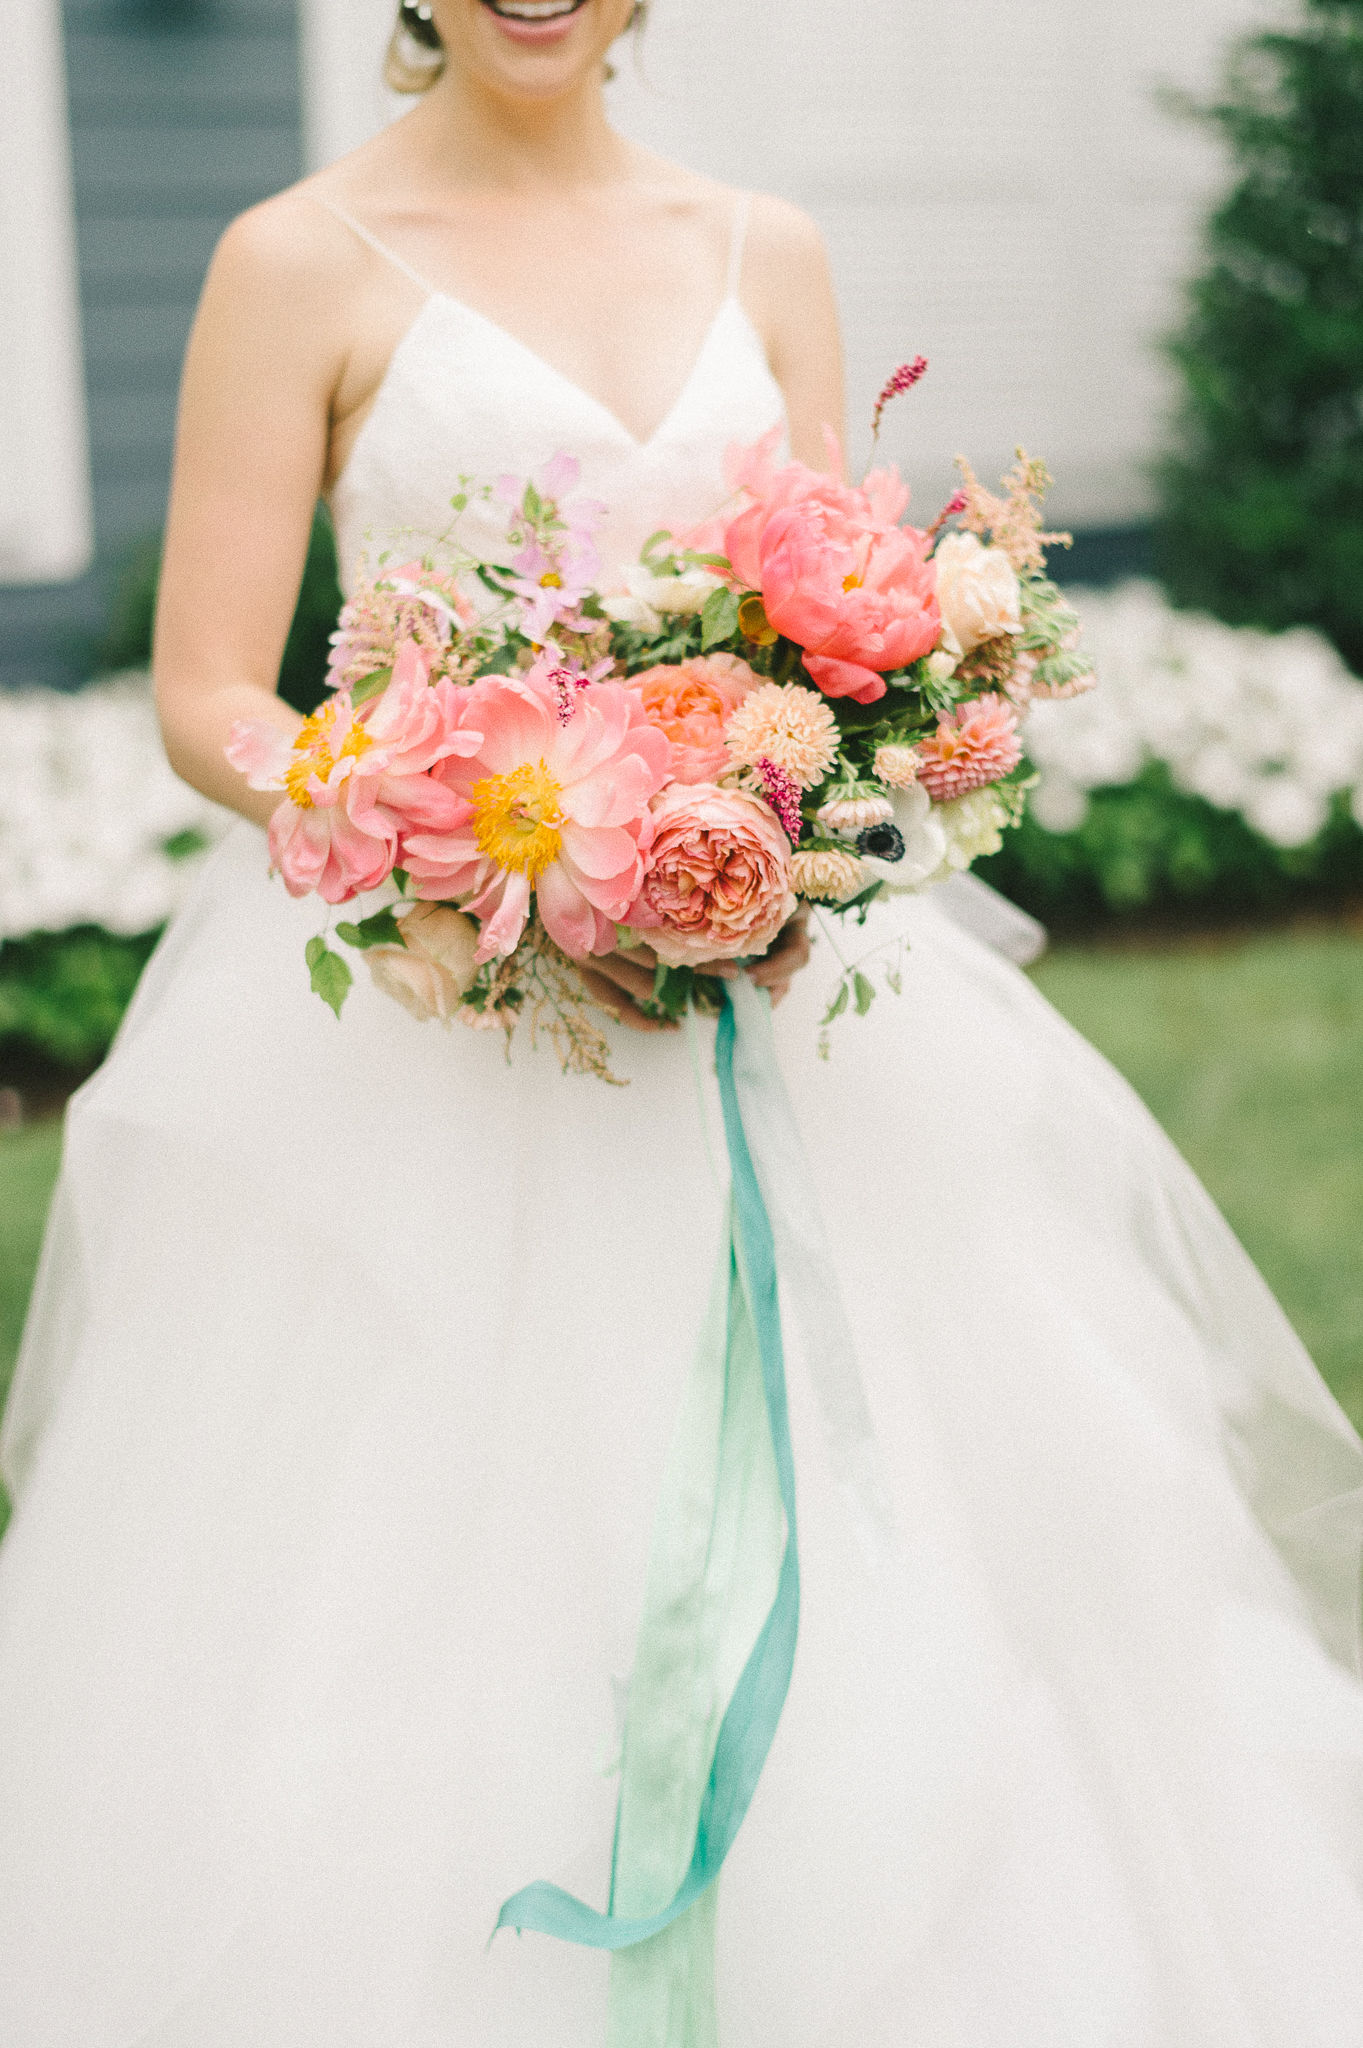 Sophie Felts Floral Design | A + M Chesapeake Bay Beach Club